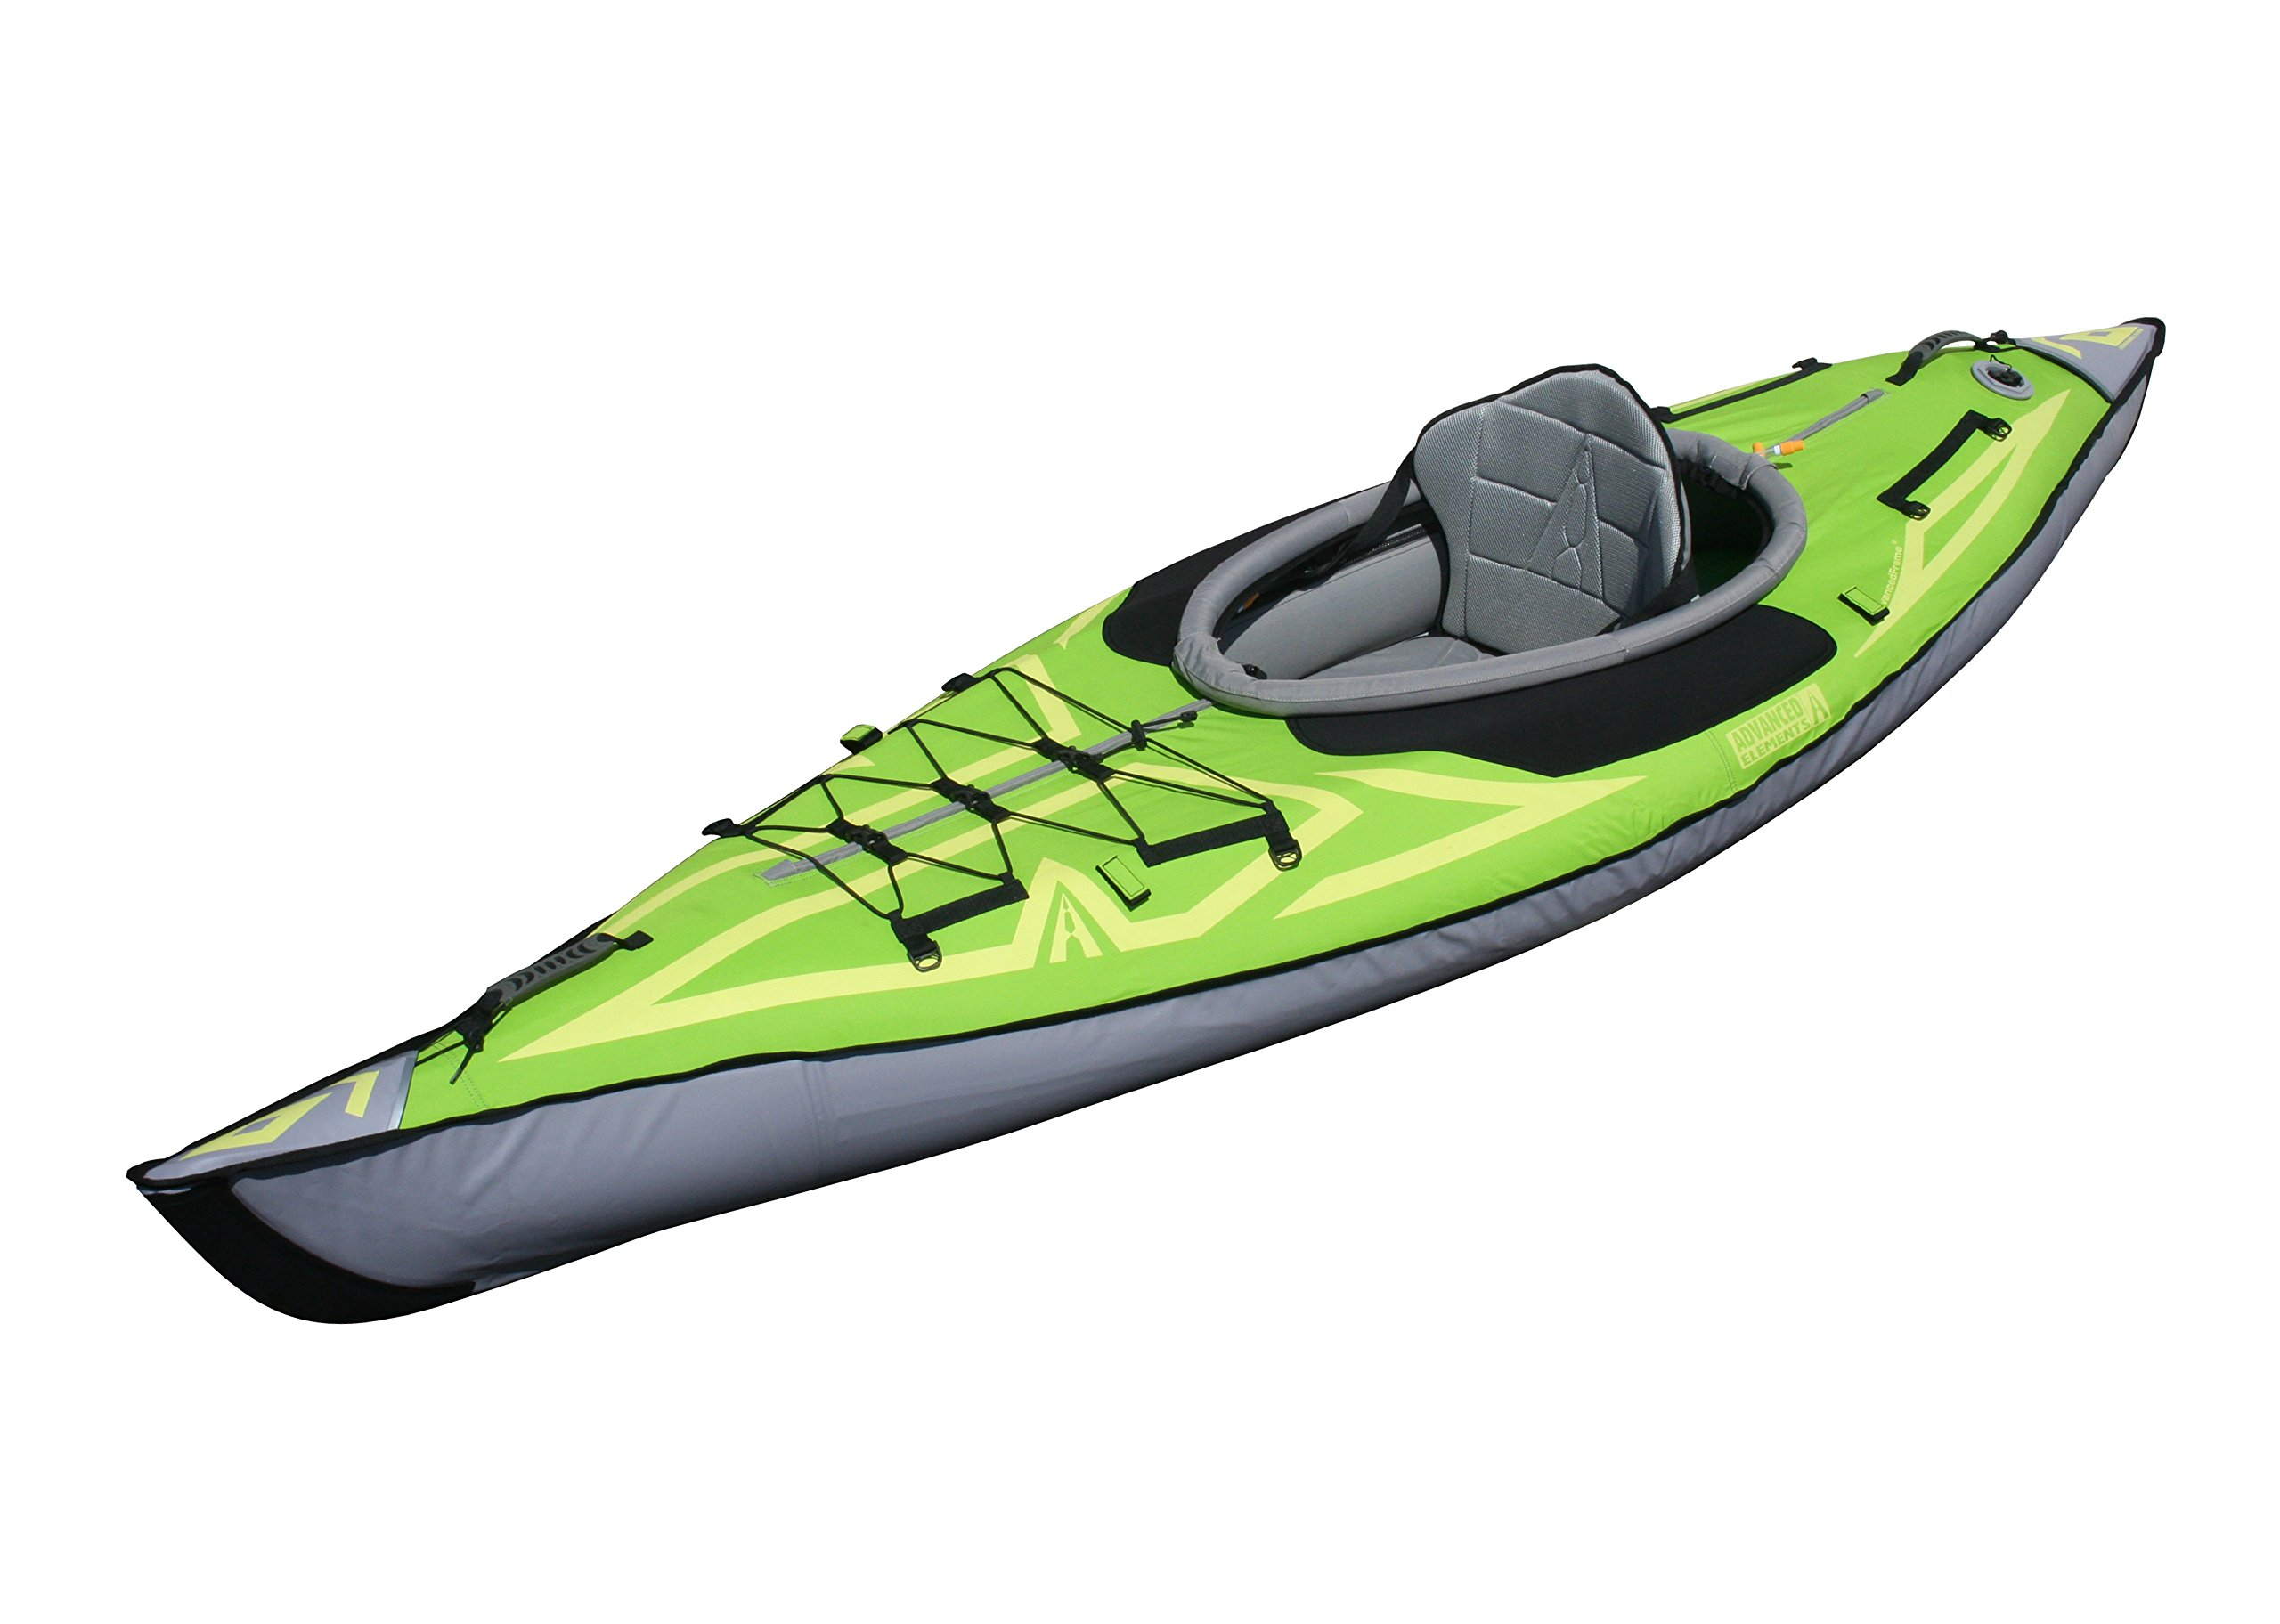 Advanced Elements AE1012-G Frame Inflatable Kayak, Green by ADVANCED ELEMENTS